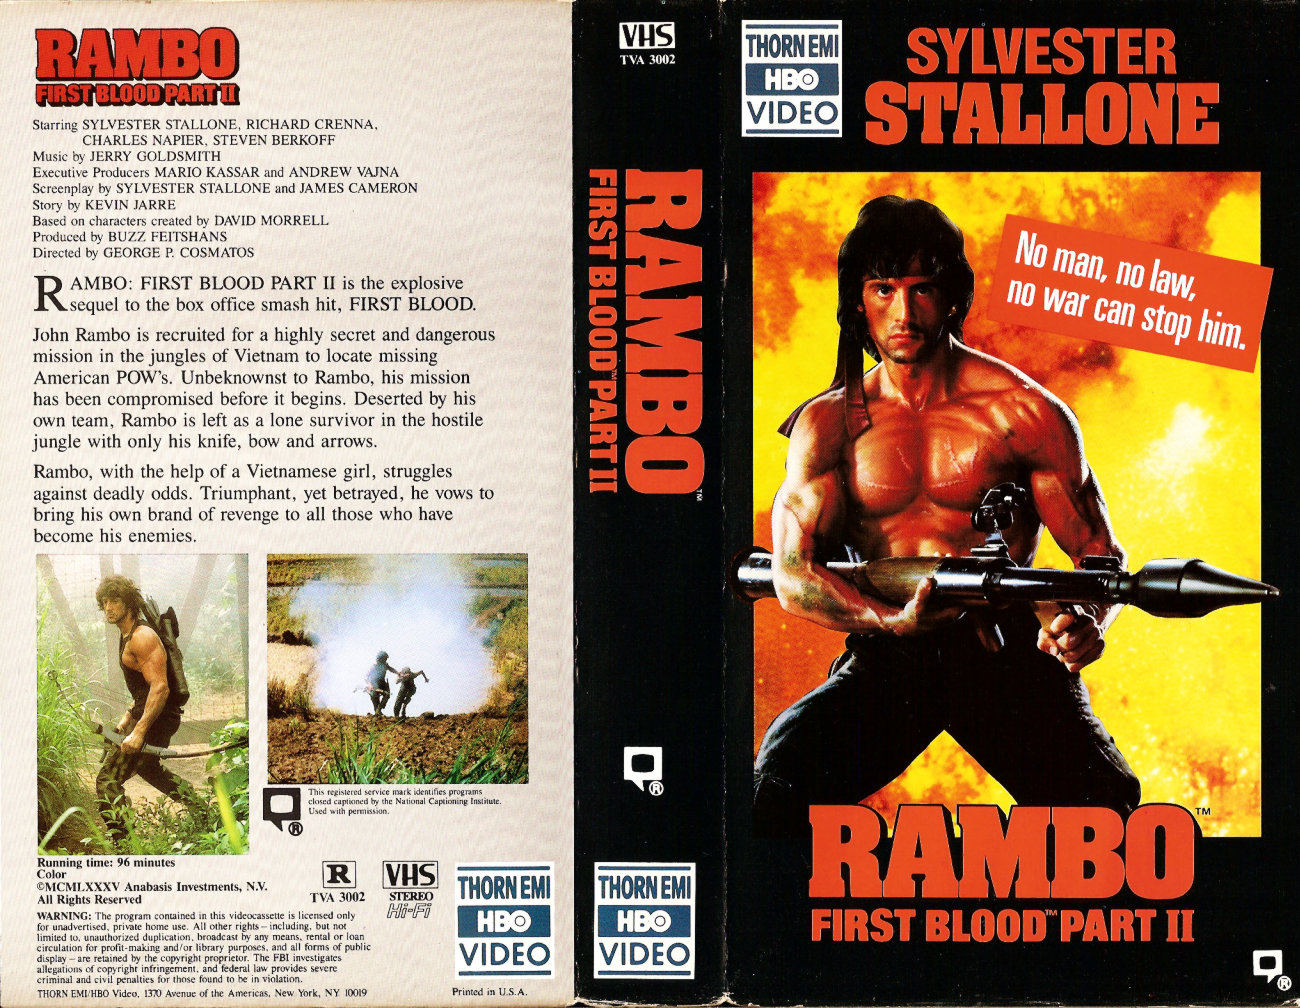 Basement Of Ghoulish Decadence Rambo First Blood Part Ii 1985 Thorn Emi Hbo Video Vhs Black Border Variant